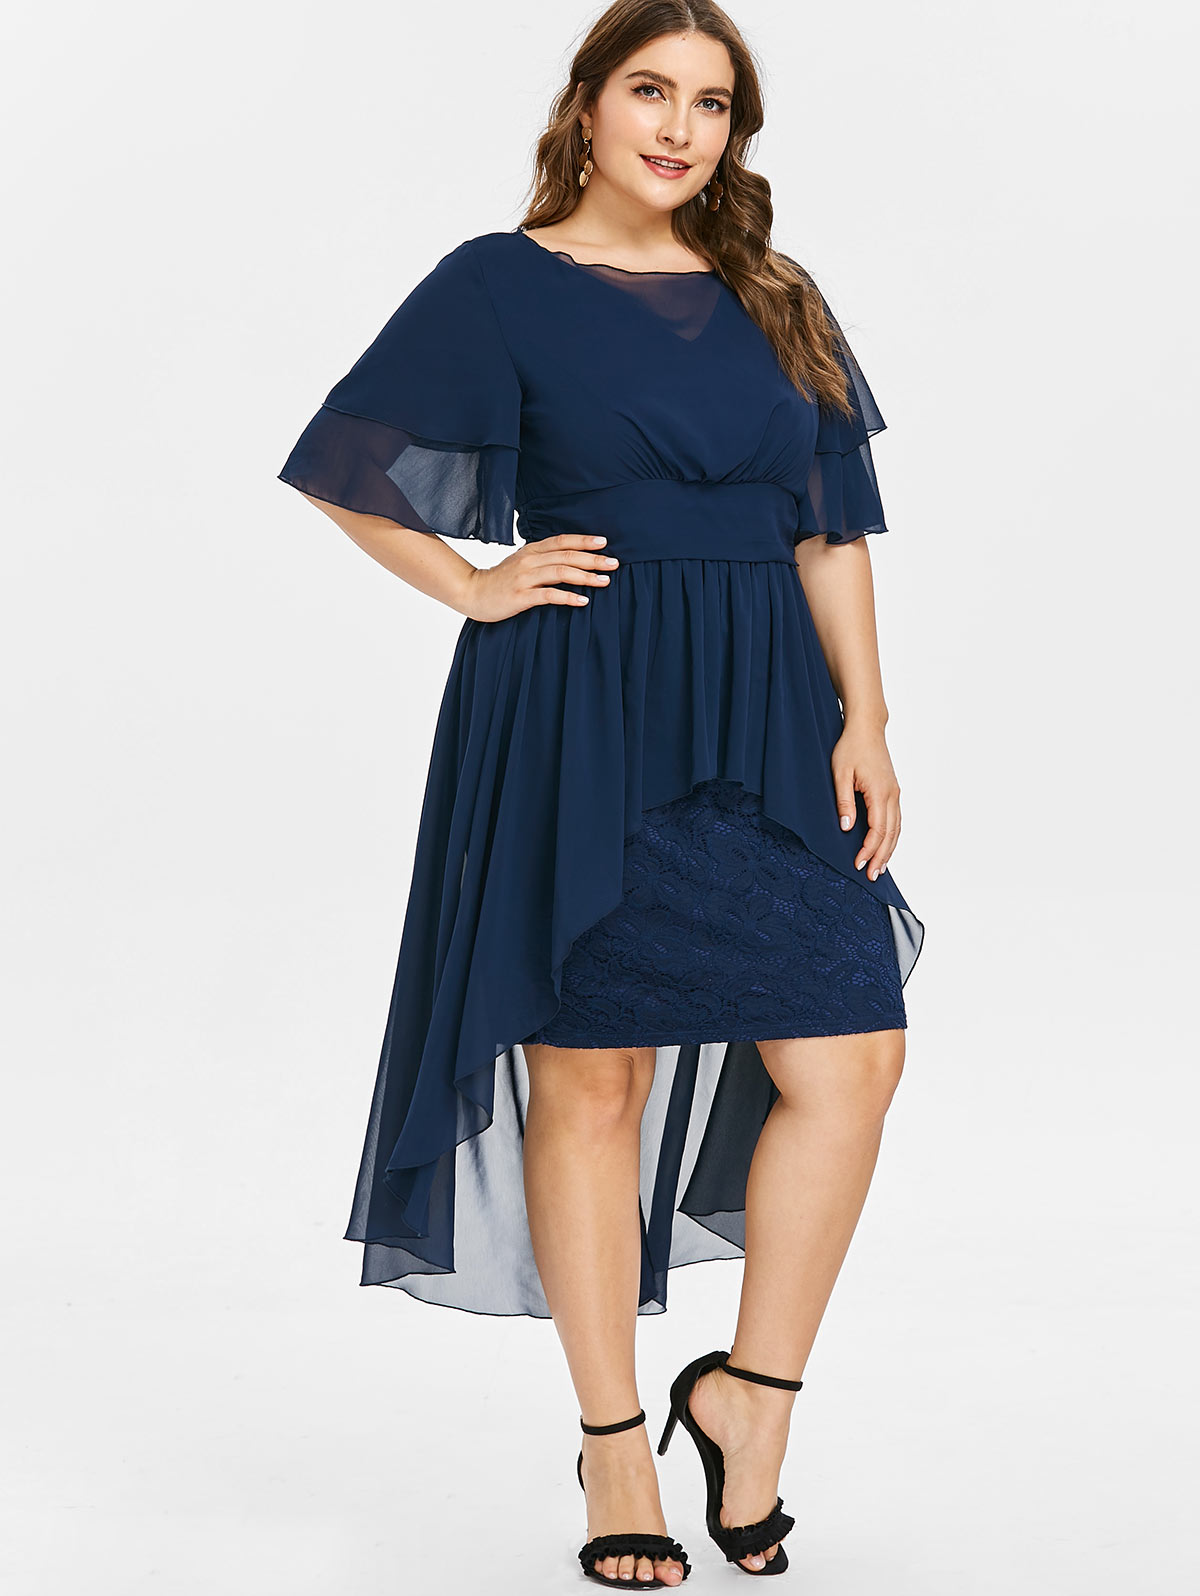 US $19.97 48% OFF|Wipalo Plus Size 5XL High Waist Lace Panel High Low Dress  Elegant Ladies Half Sleeves Mid Calf Length Party Dress Vestidos-in ...